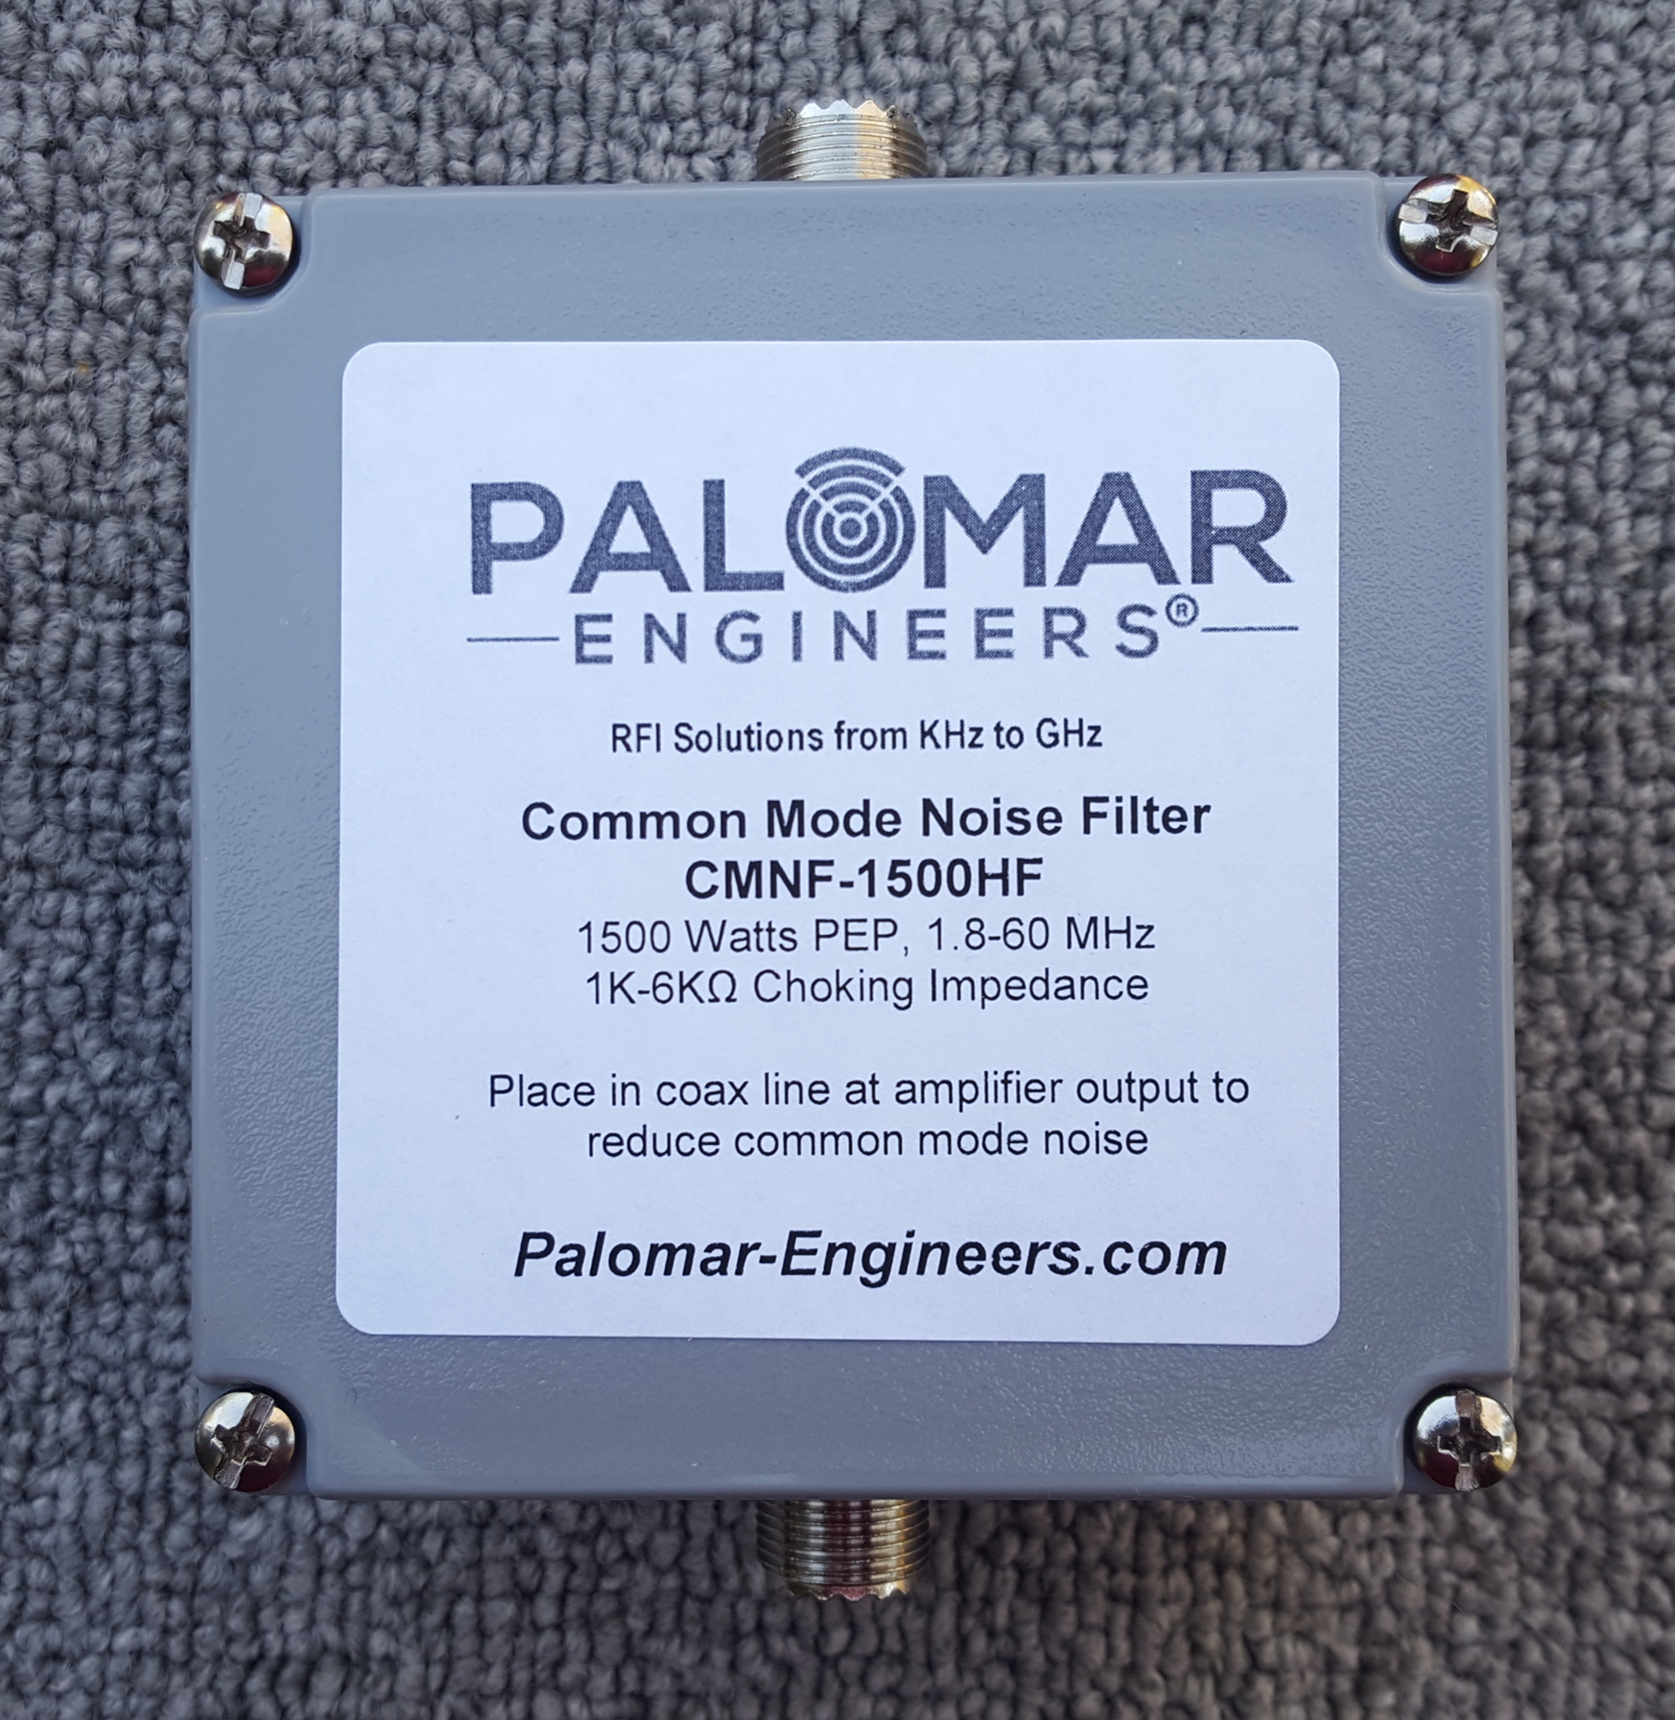 Common Mode Coax Noise Filter - 1500 Watts, 1.8-60 MHz CMNF-1500HF